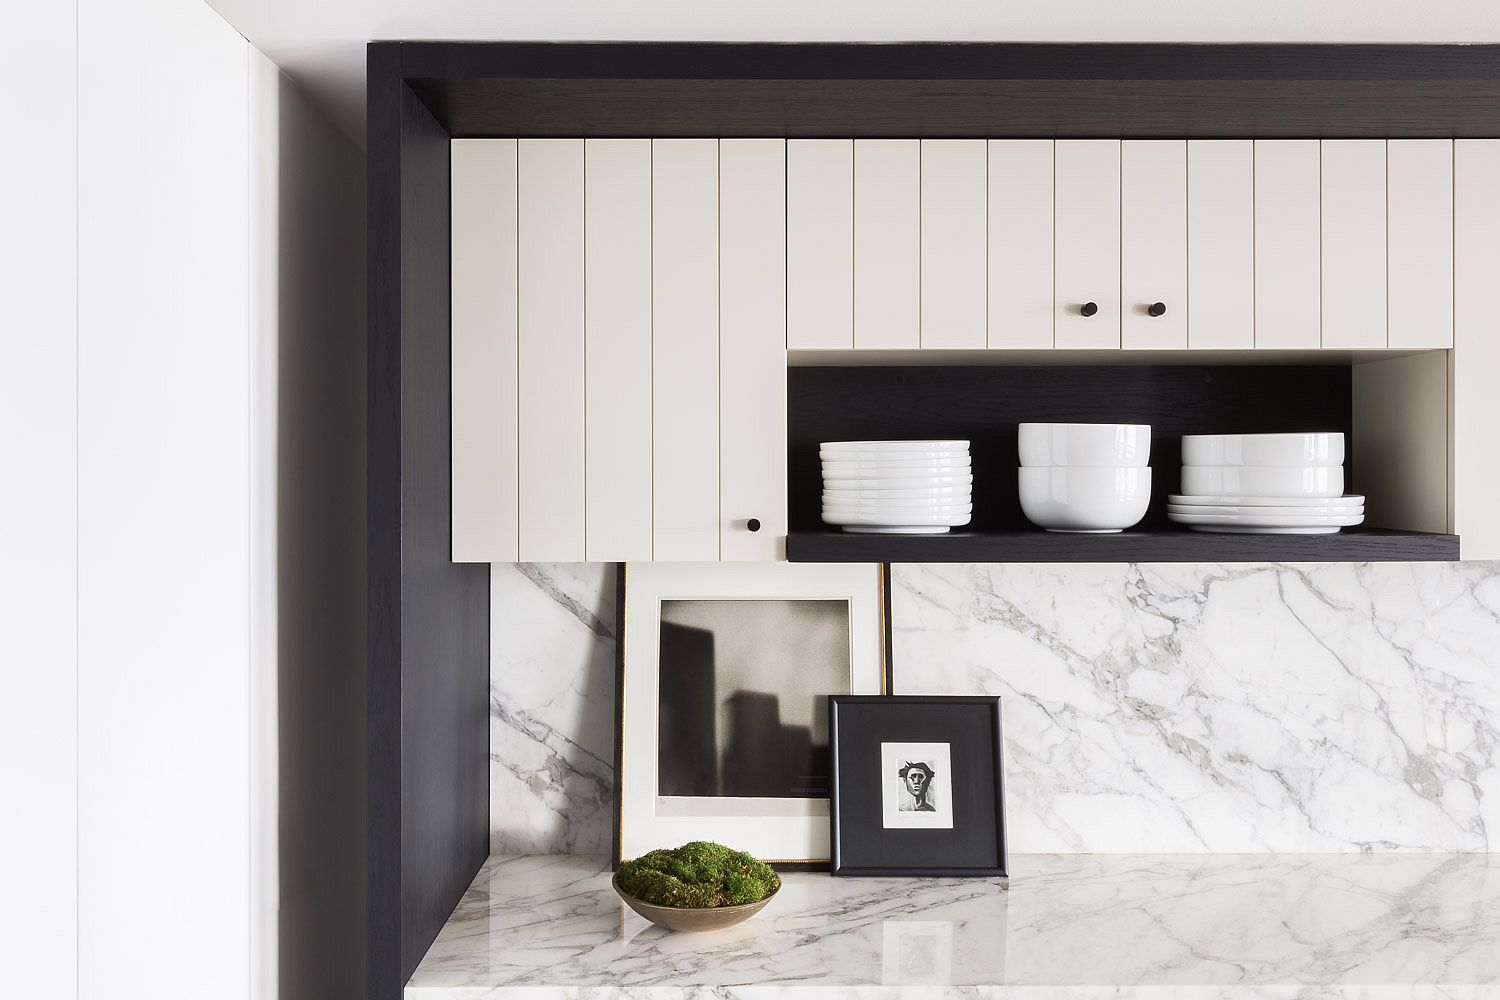 Closer look at the kichen shelving along with the posh marble finishes and backsplash